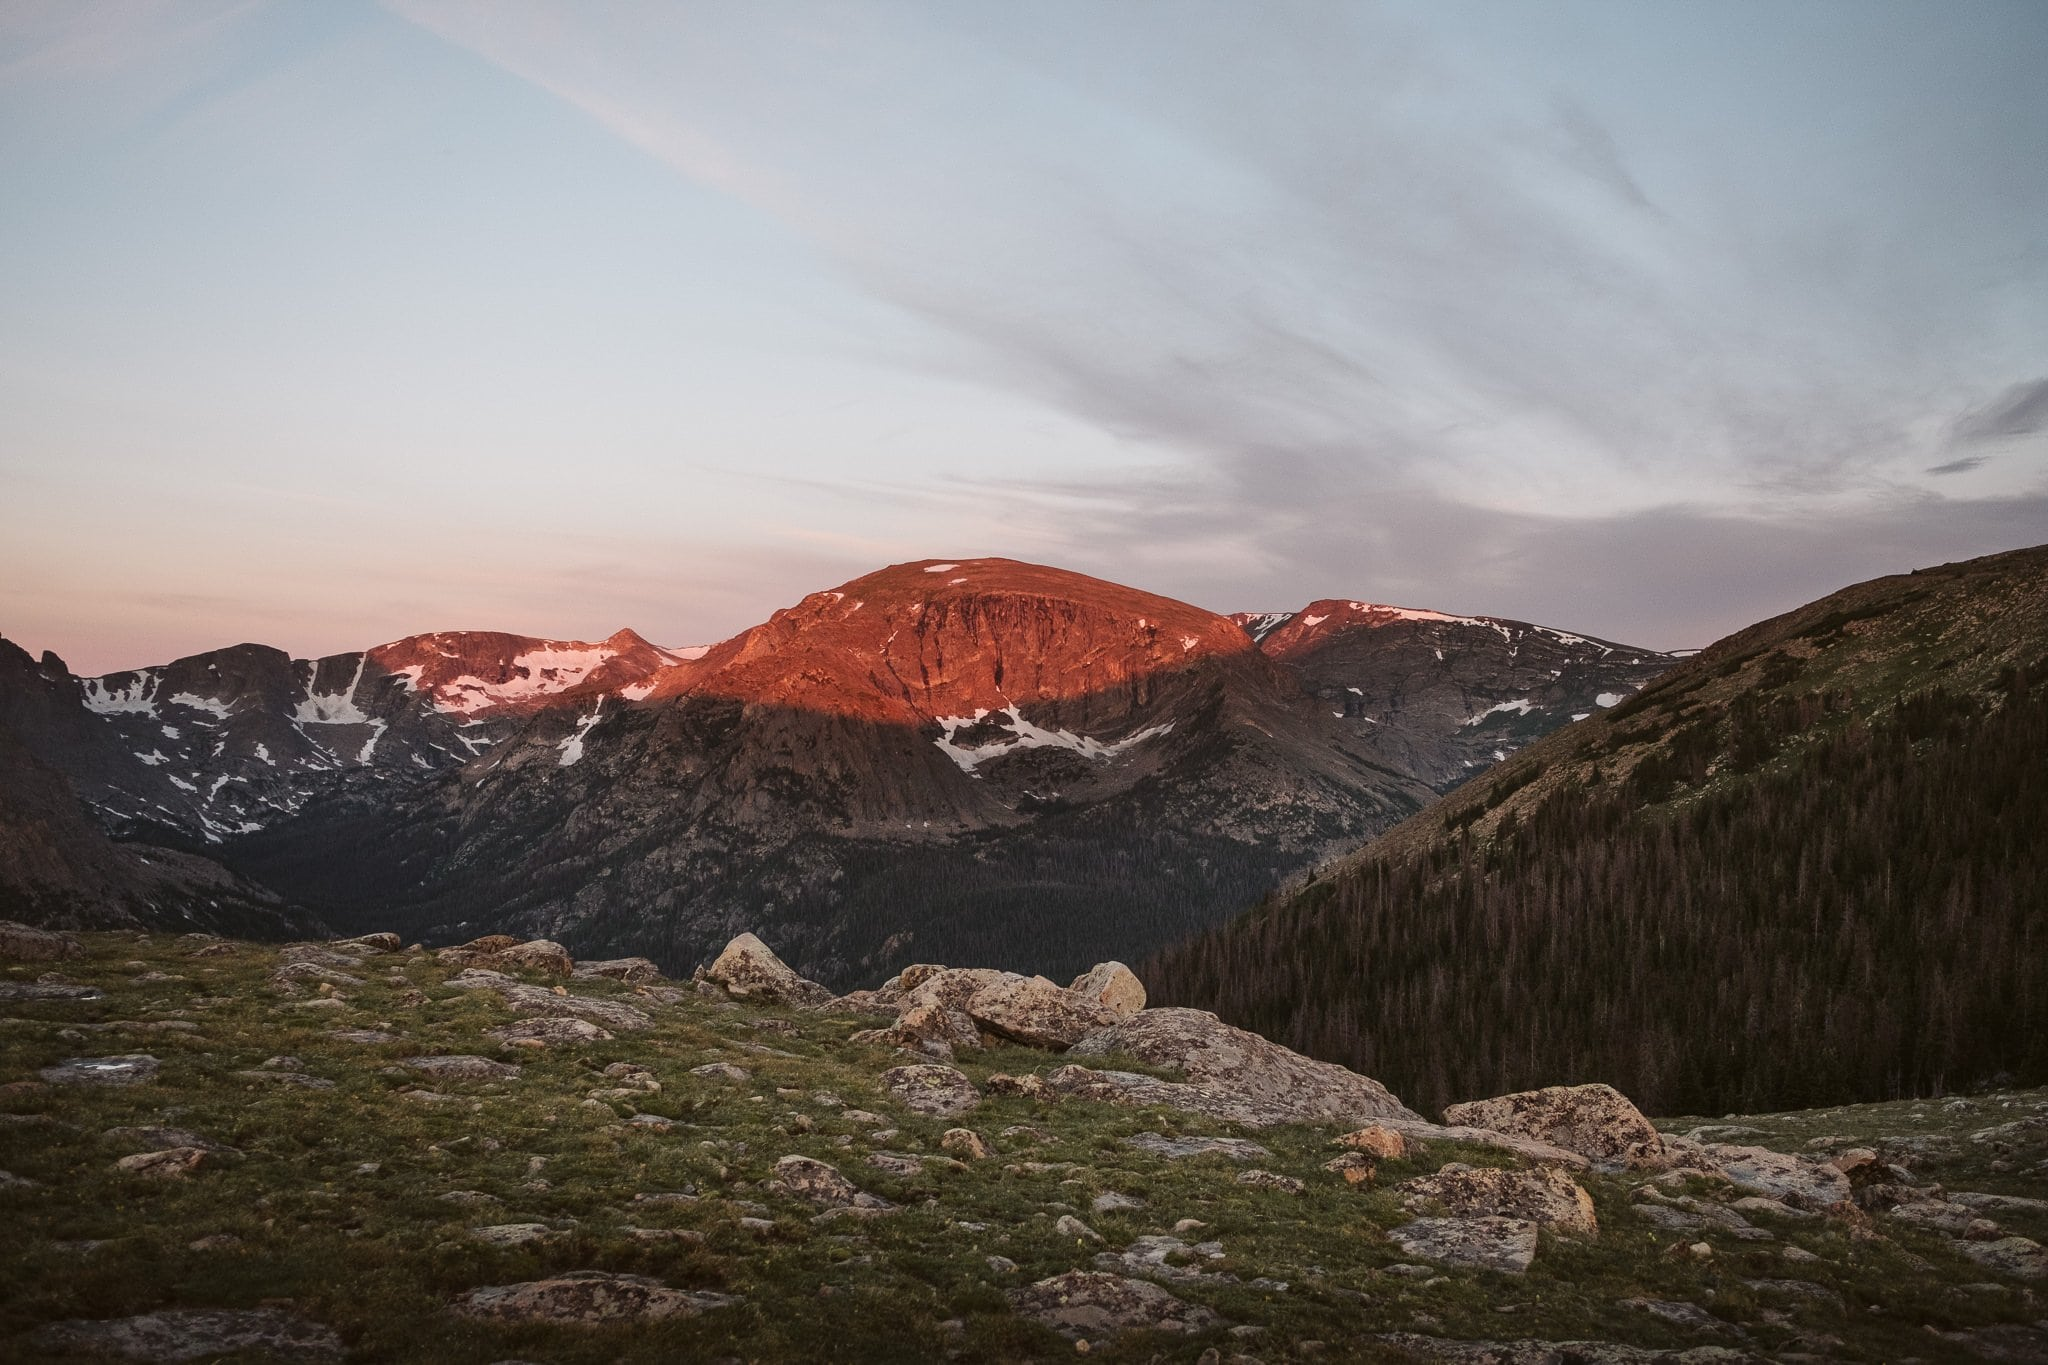 Sunrise alpenglow on the mountains in RMNP